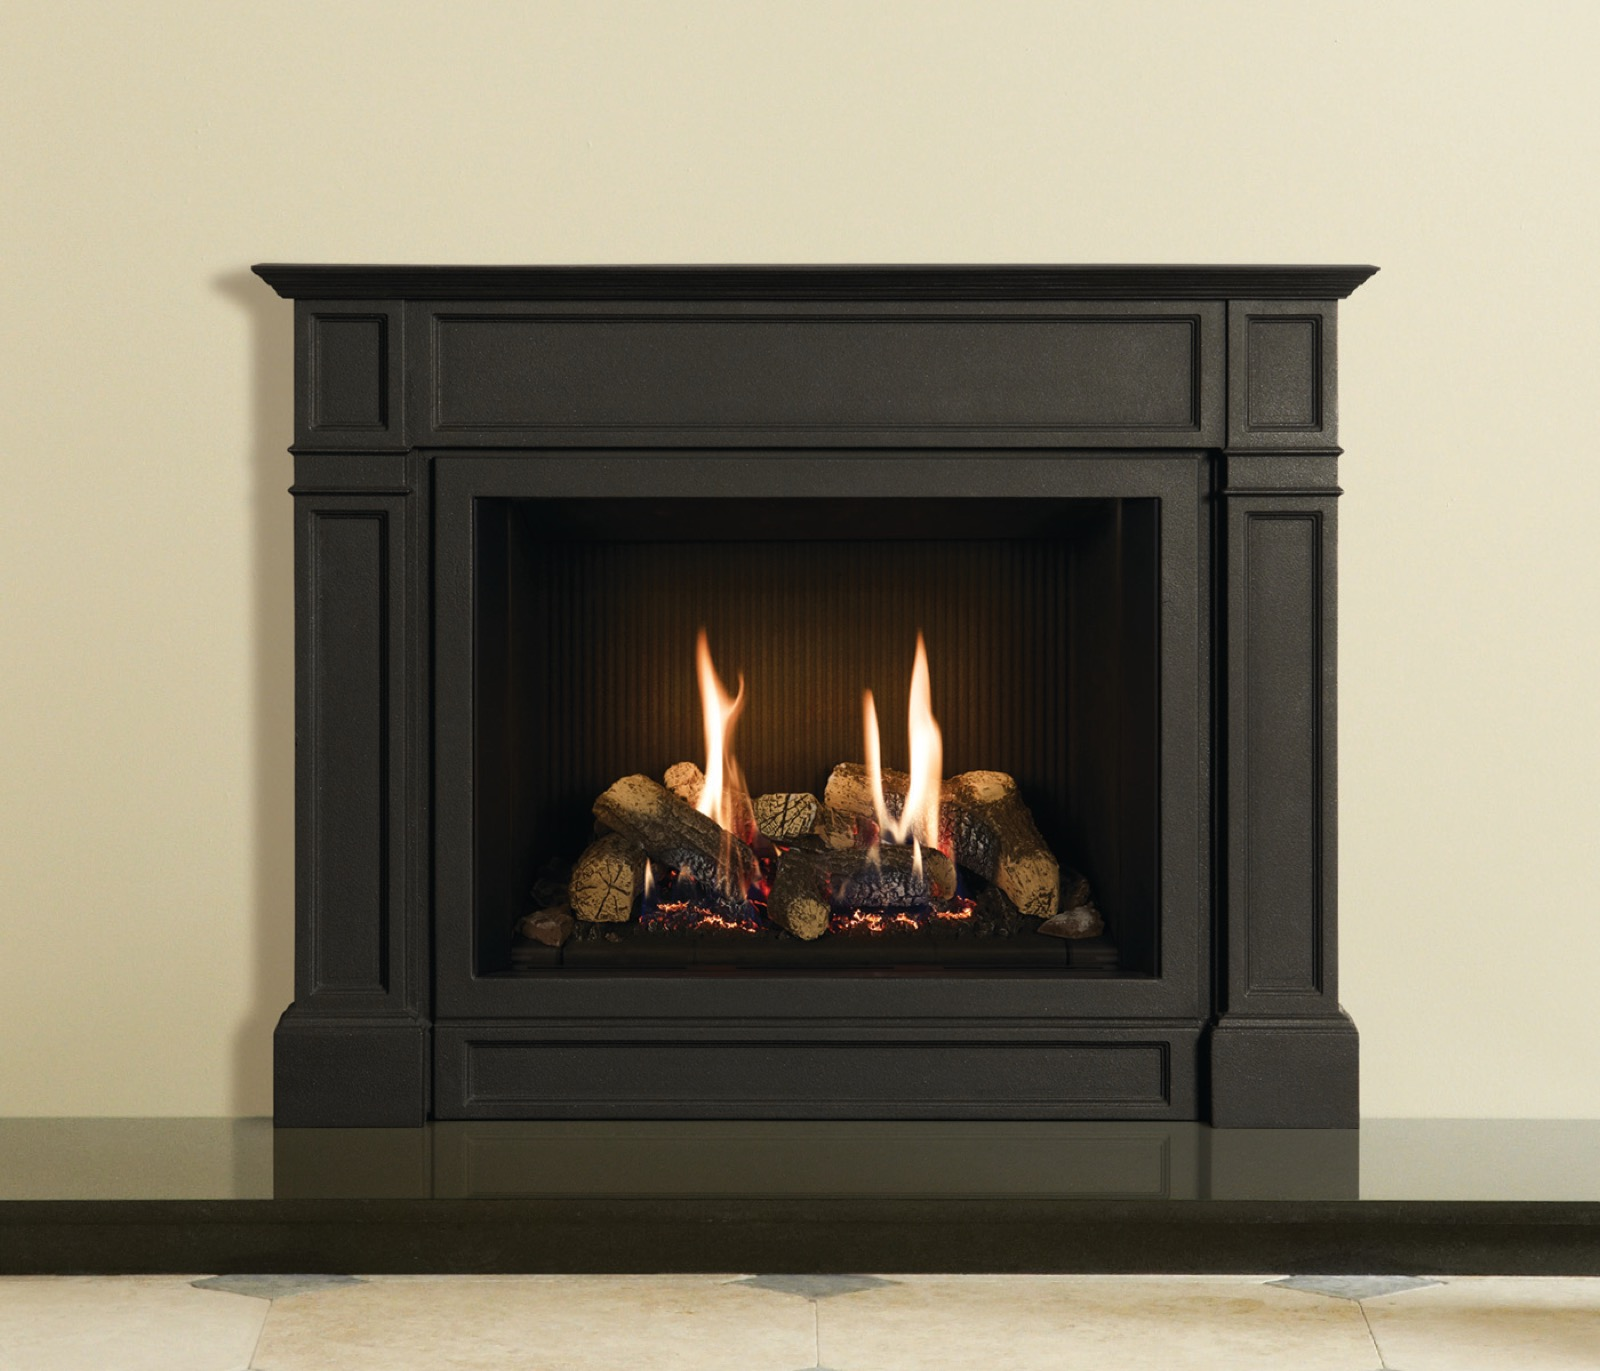 Ellingham Front Frame Only In Matt Black Cast Iron For